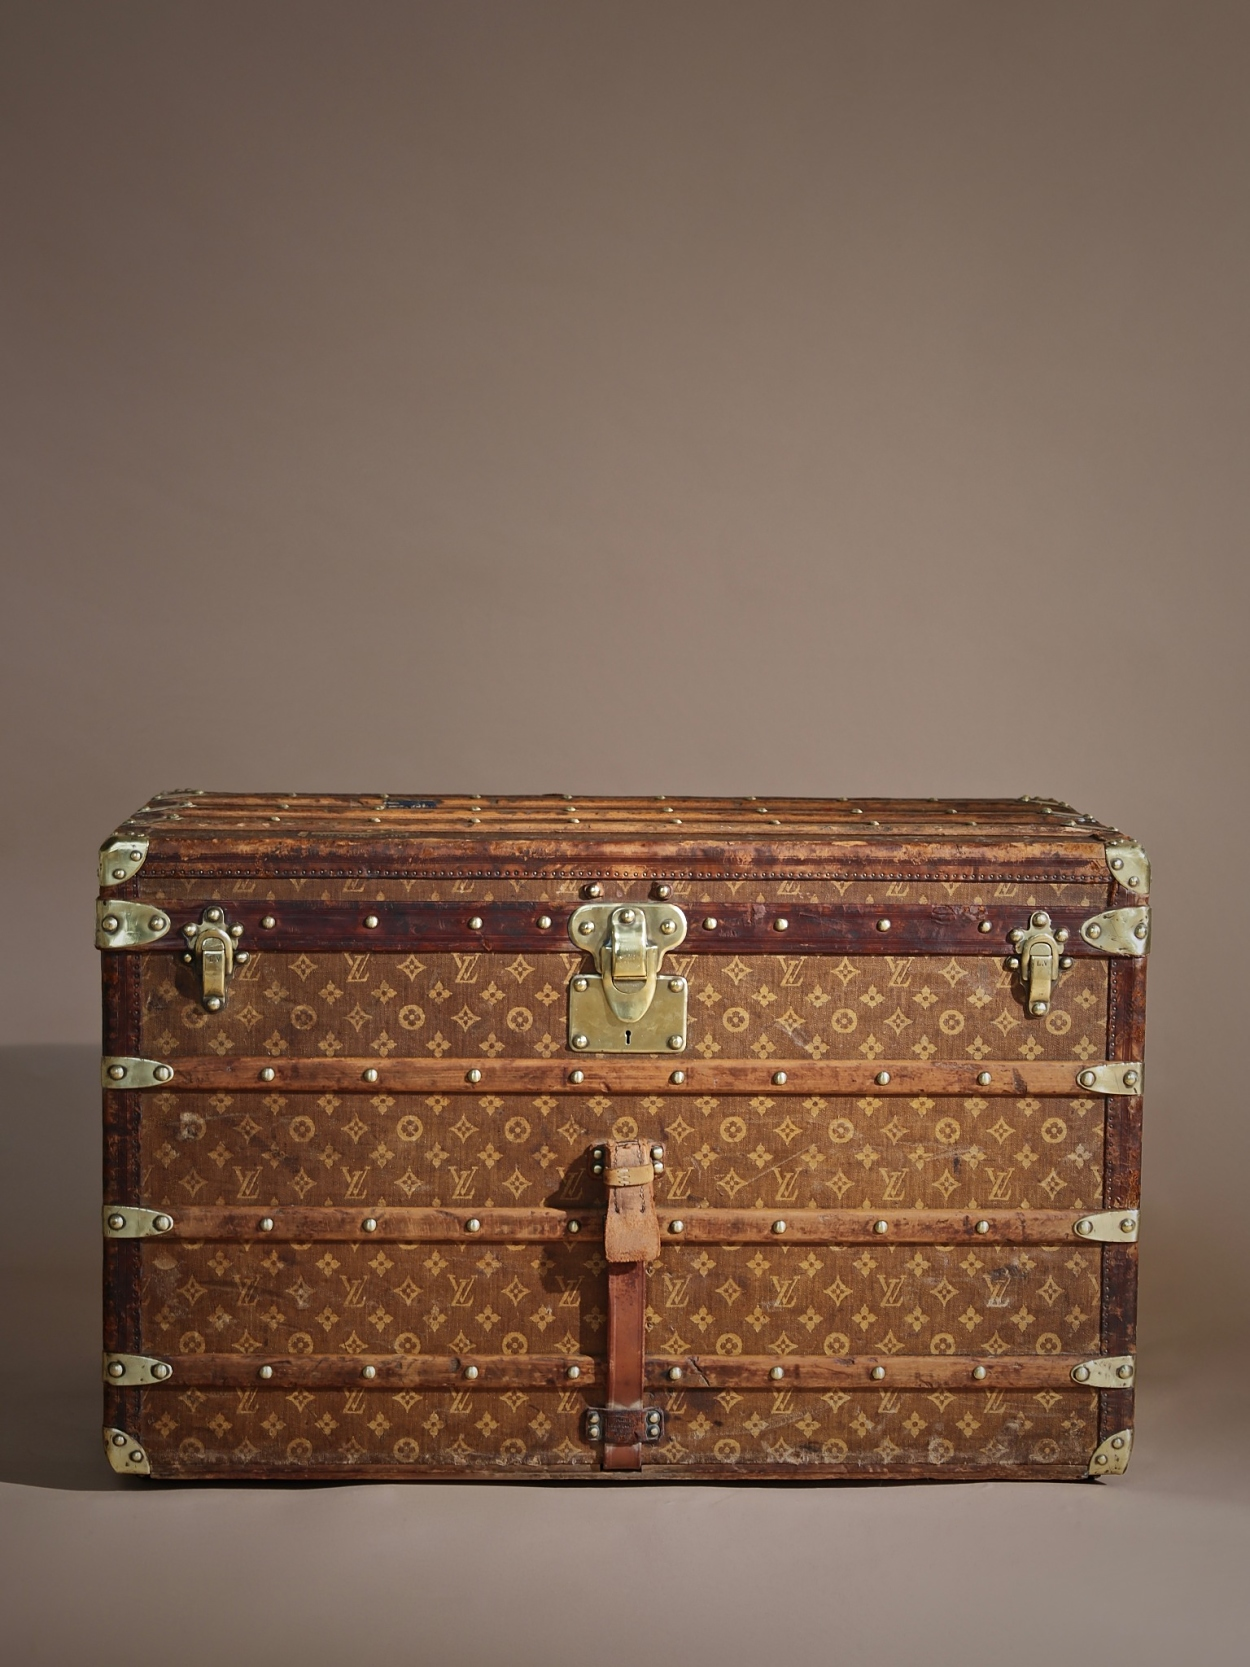 d-trunk-louis-vuitton-thumbnail-product-5736-1